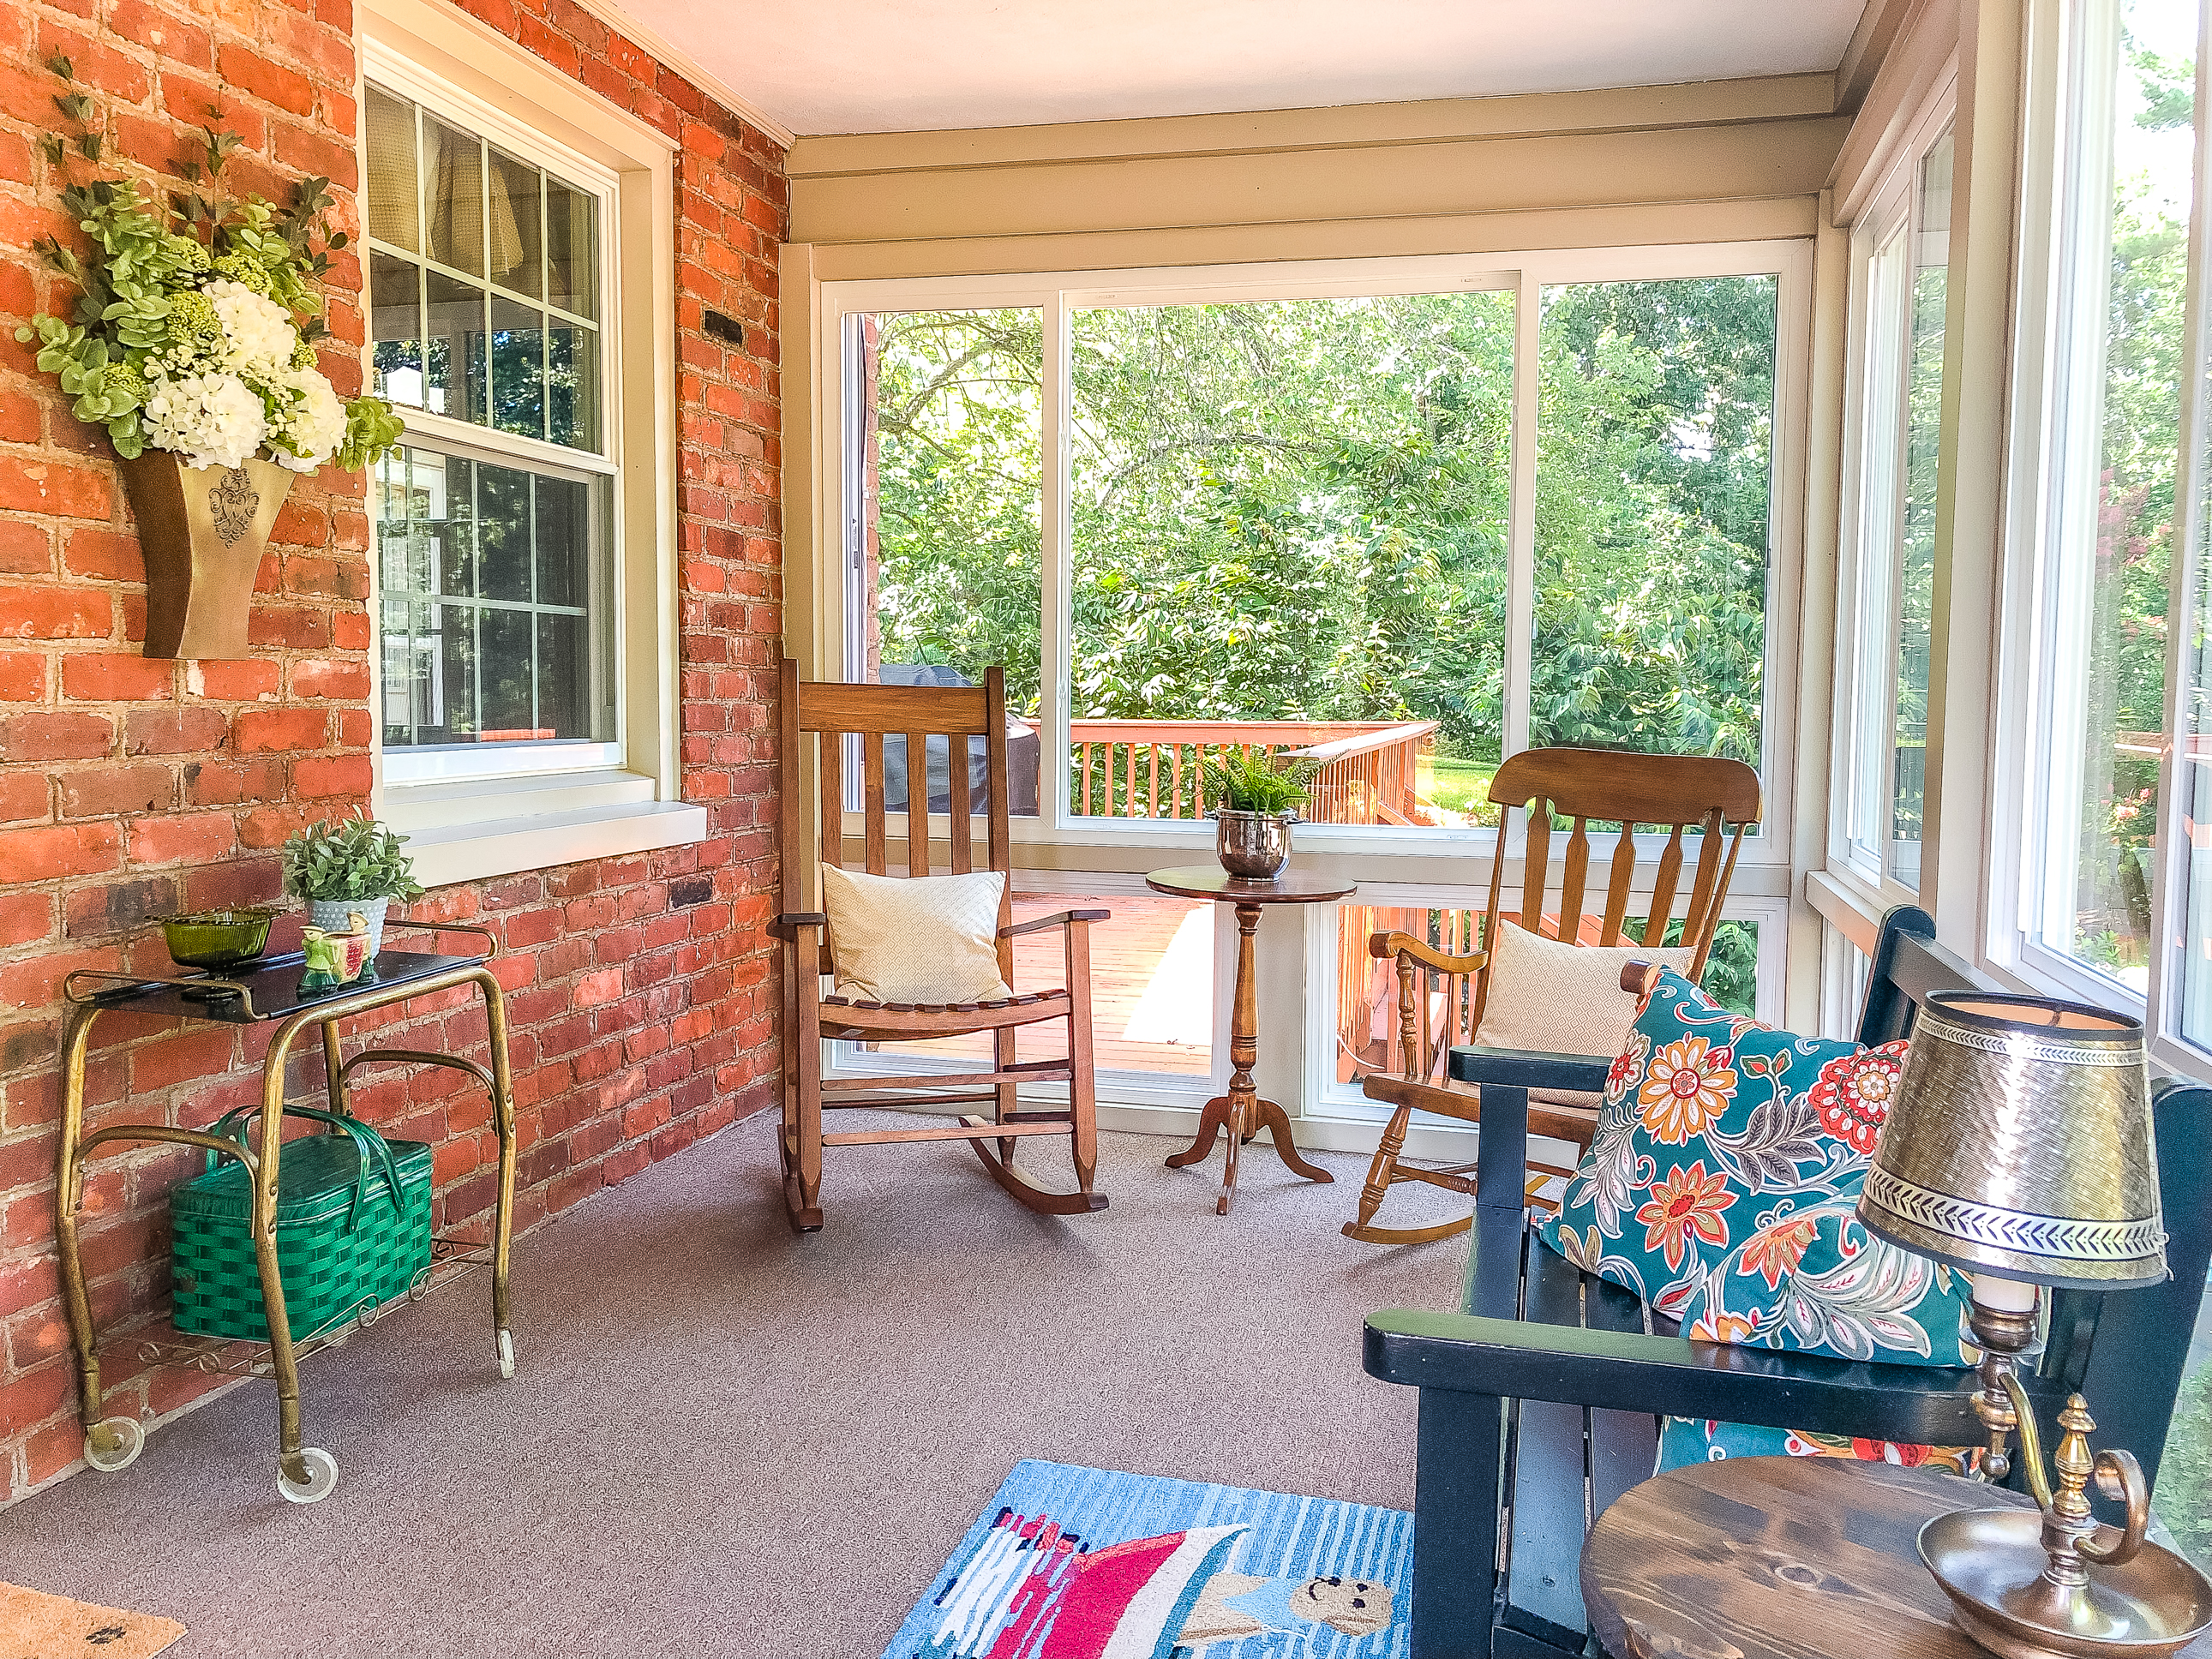 Interior pictures of a screened porch converted to a sunroom.